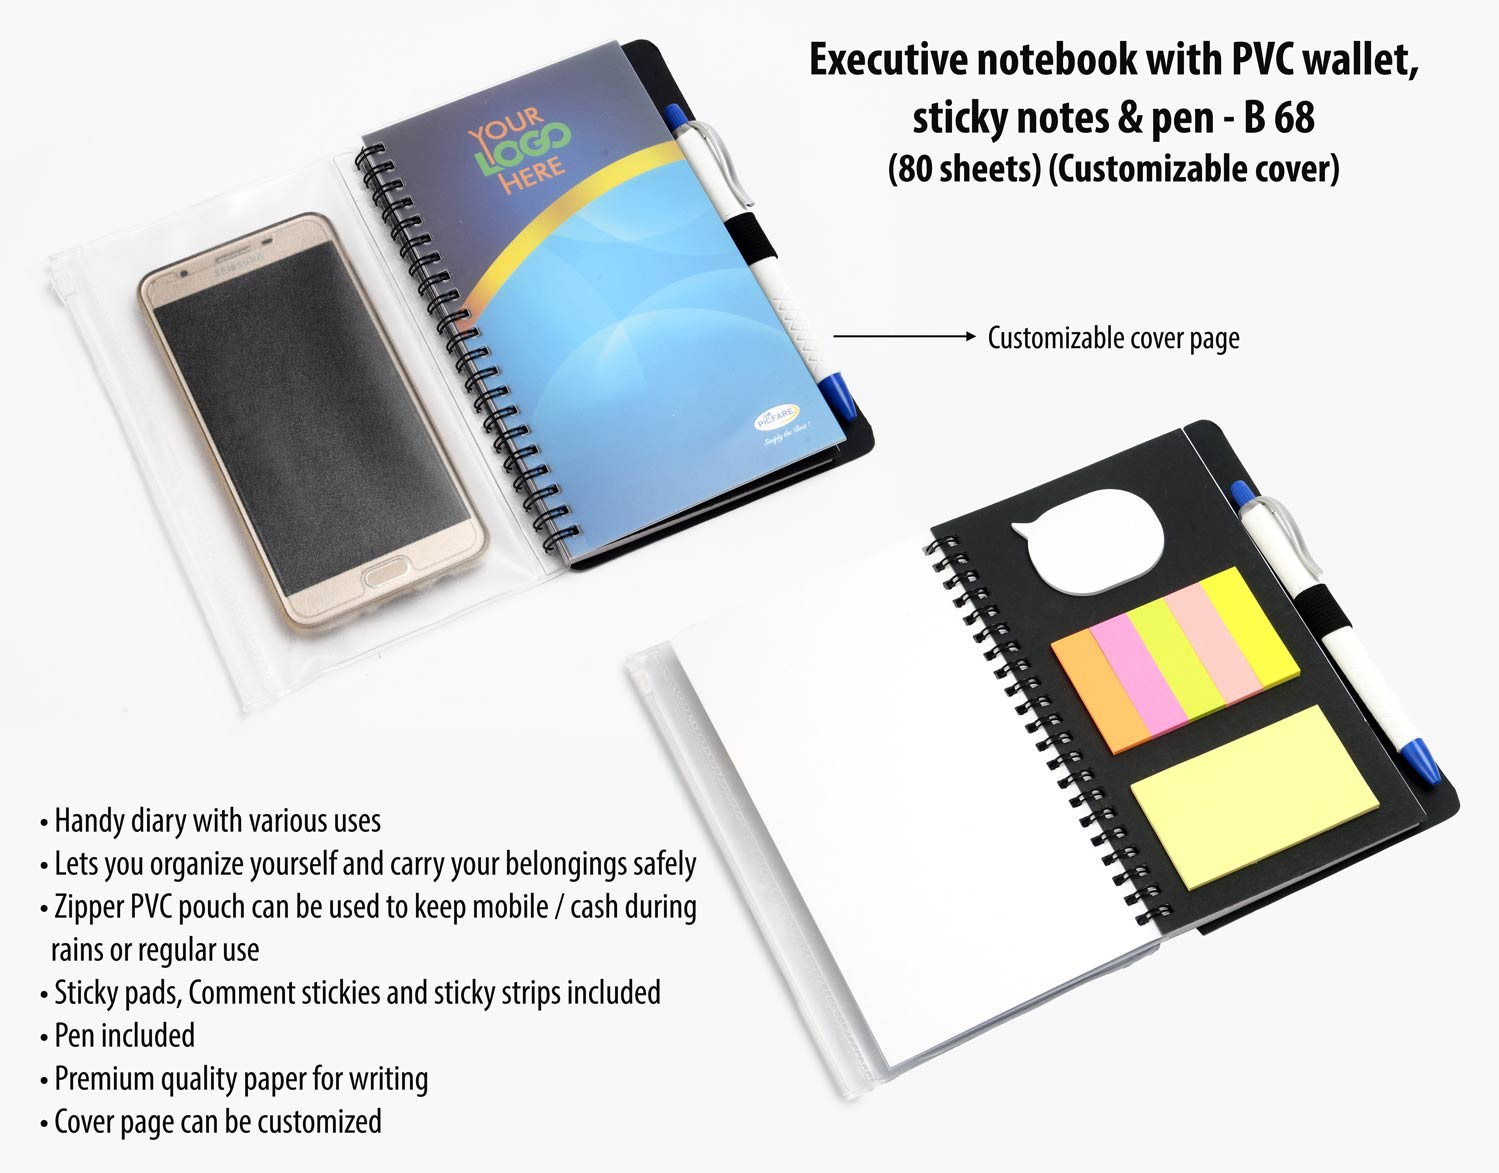 B68 - Executive notebook with PVC wallet, sticky notes & pen (80 sheets) (Customizable cover)